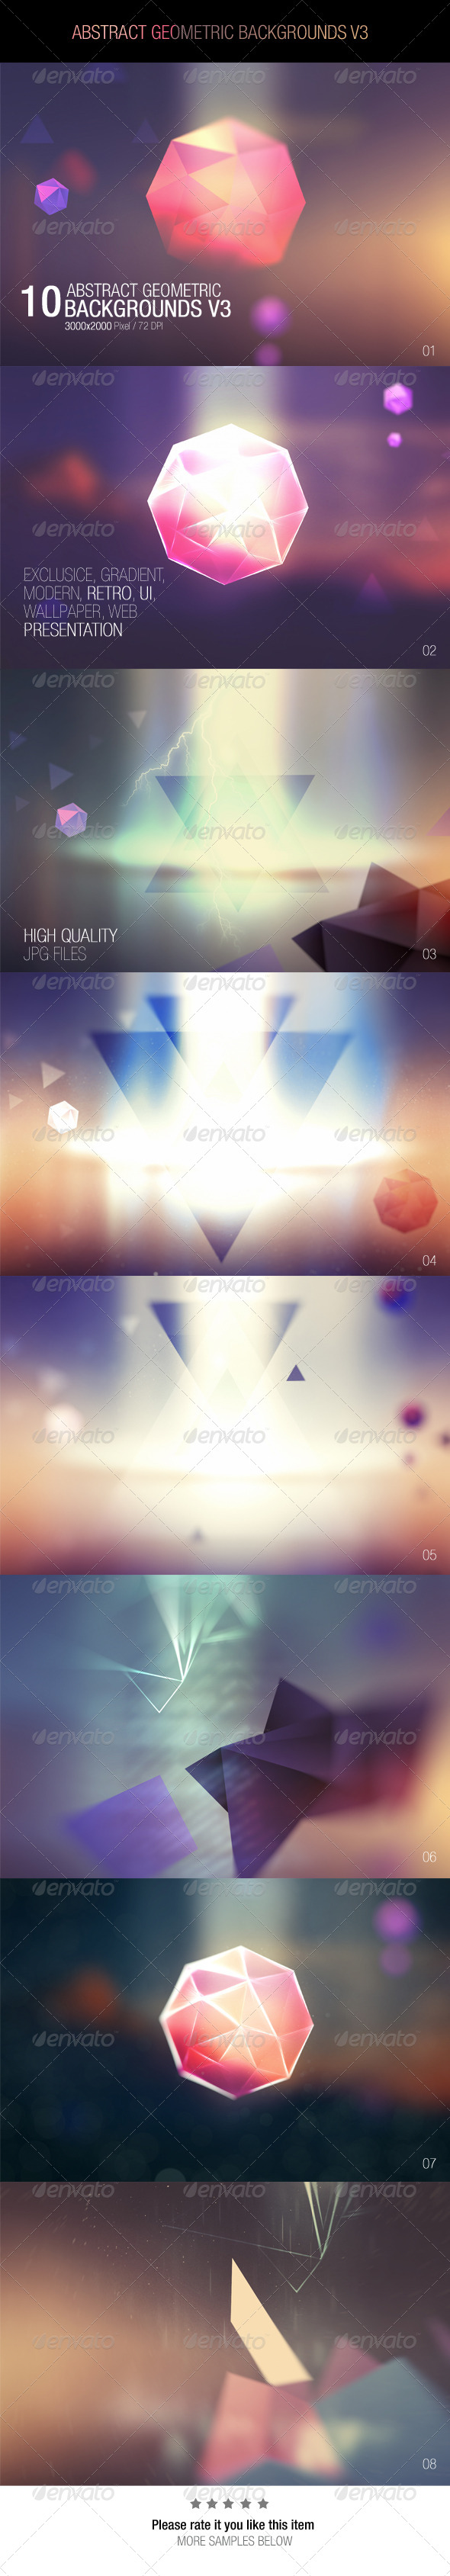 Abstract Geometric Backgrounds V3